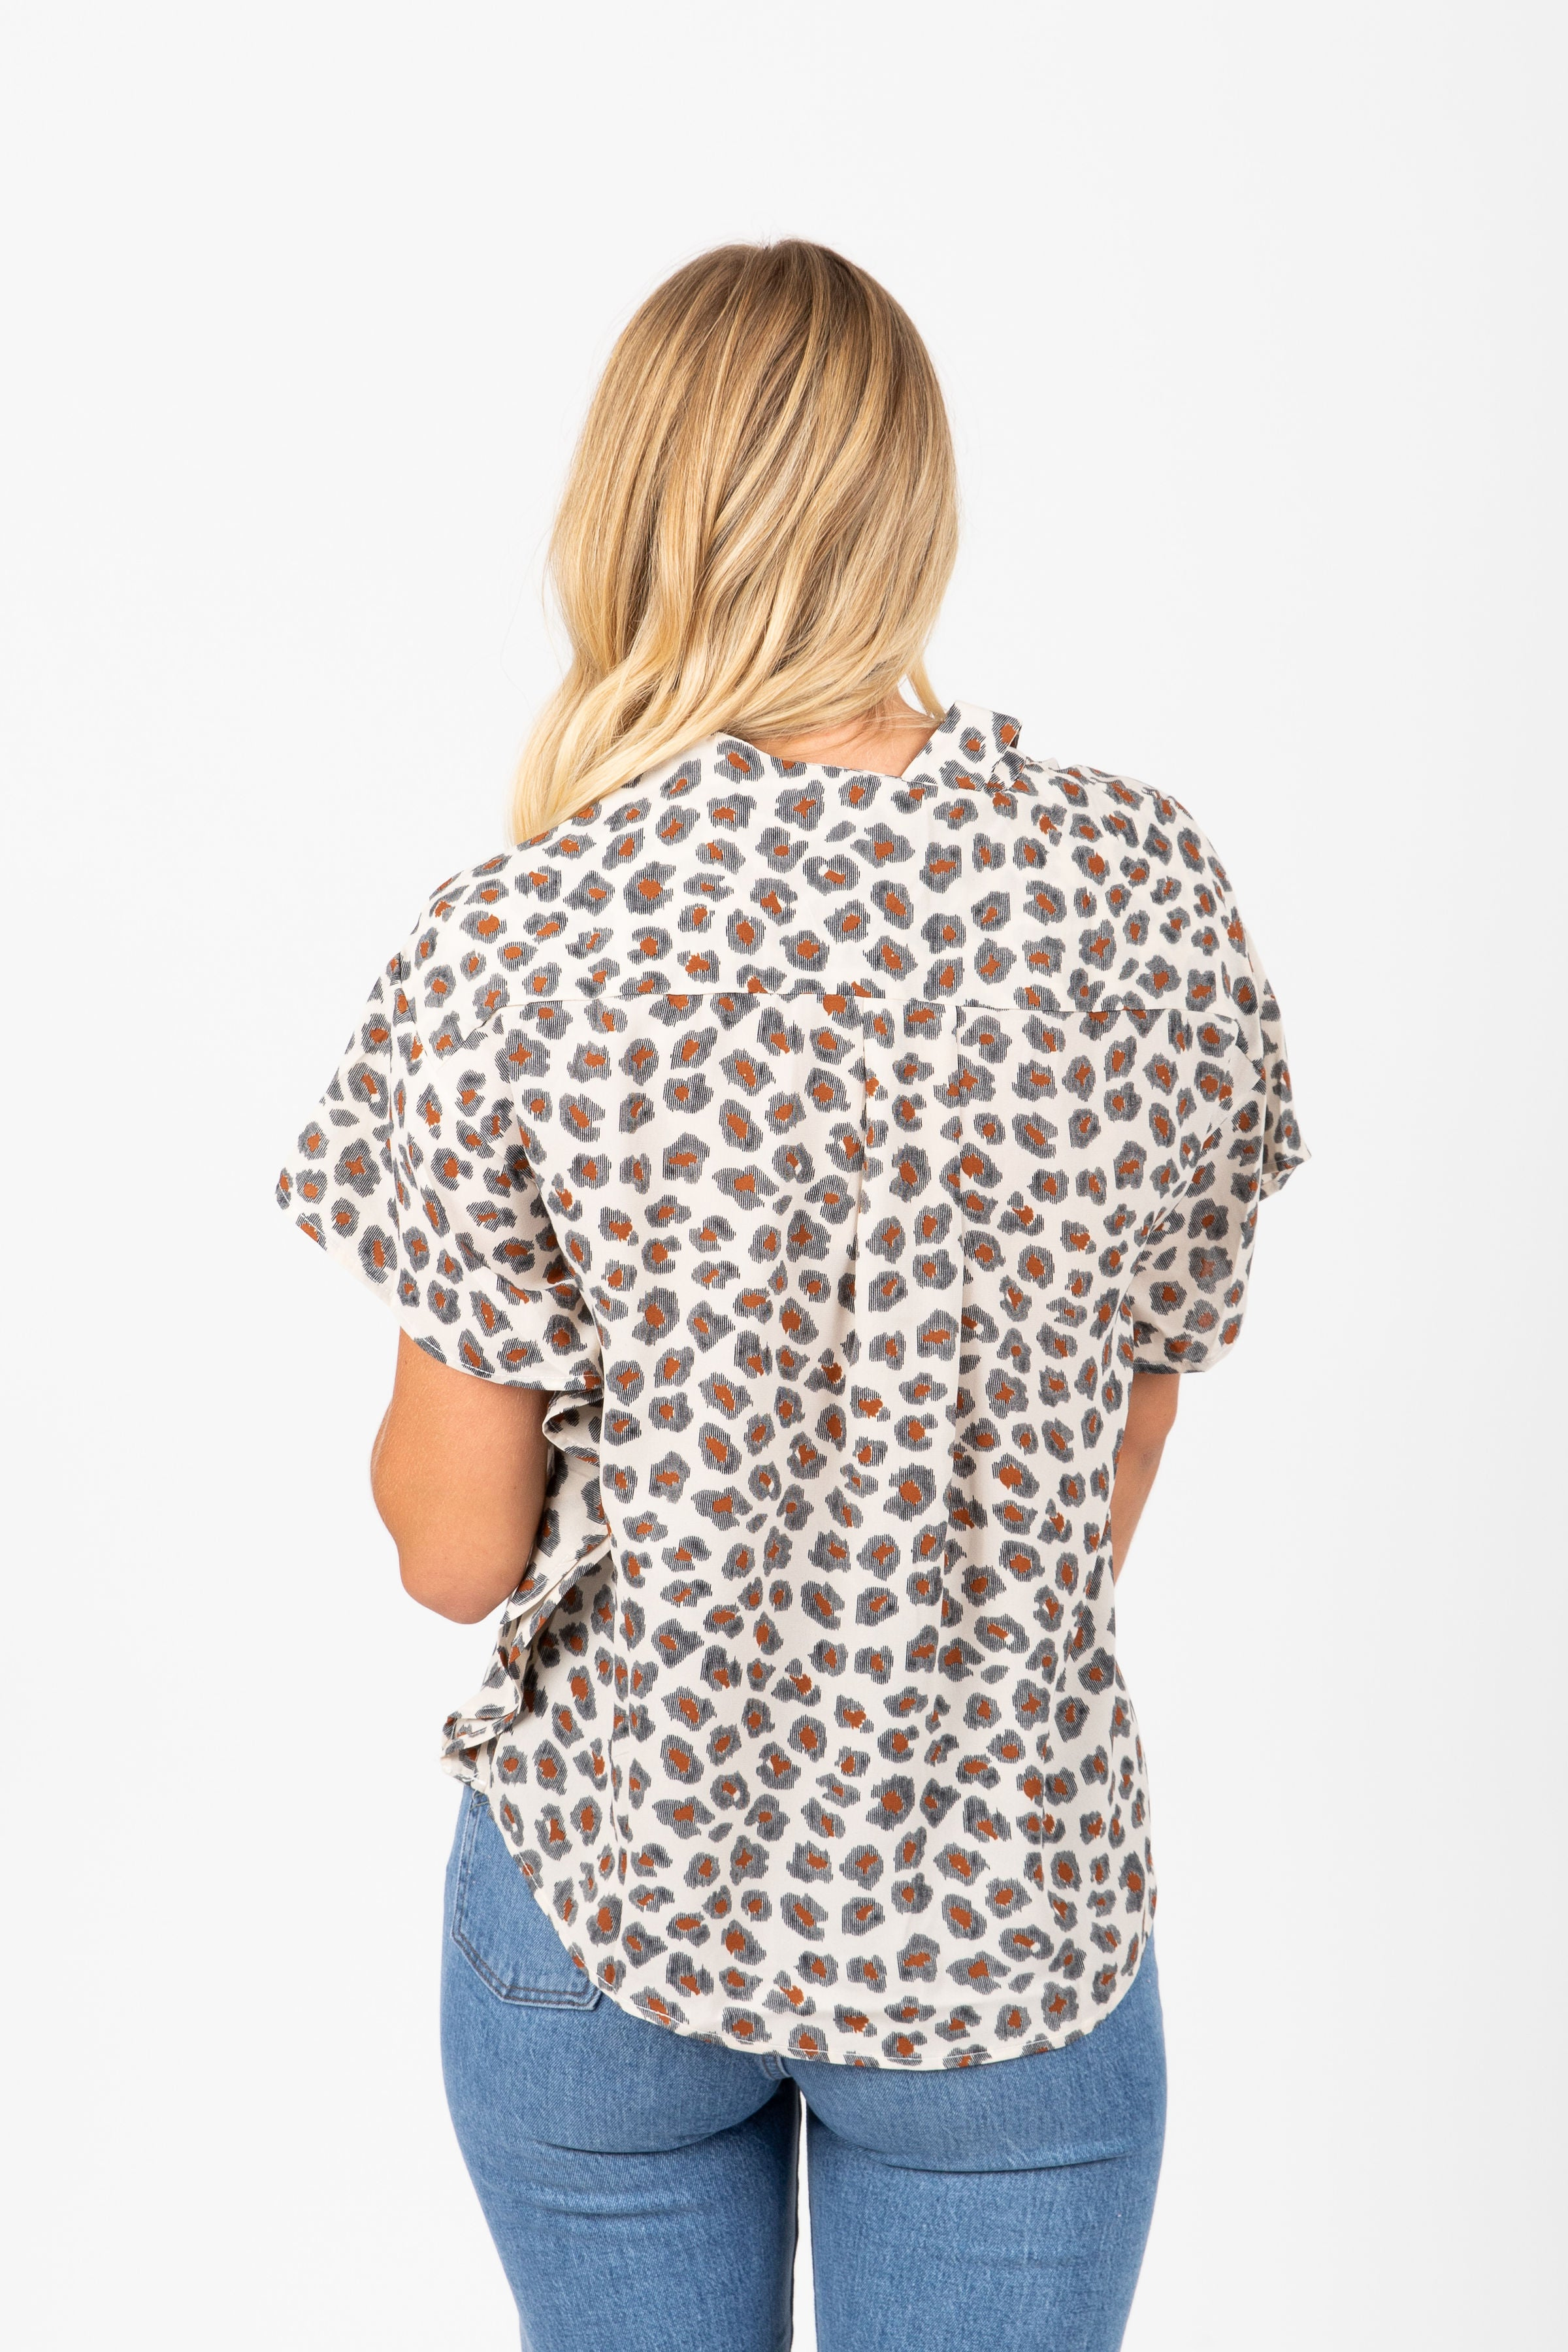 The Beyond Button Up Blouse in Leopard